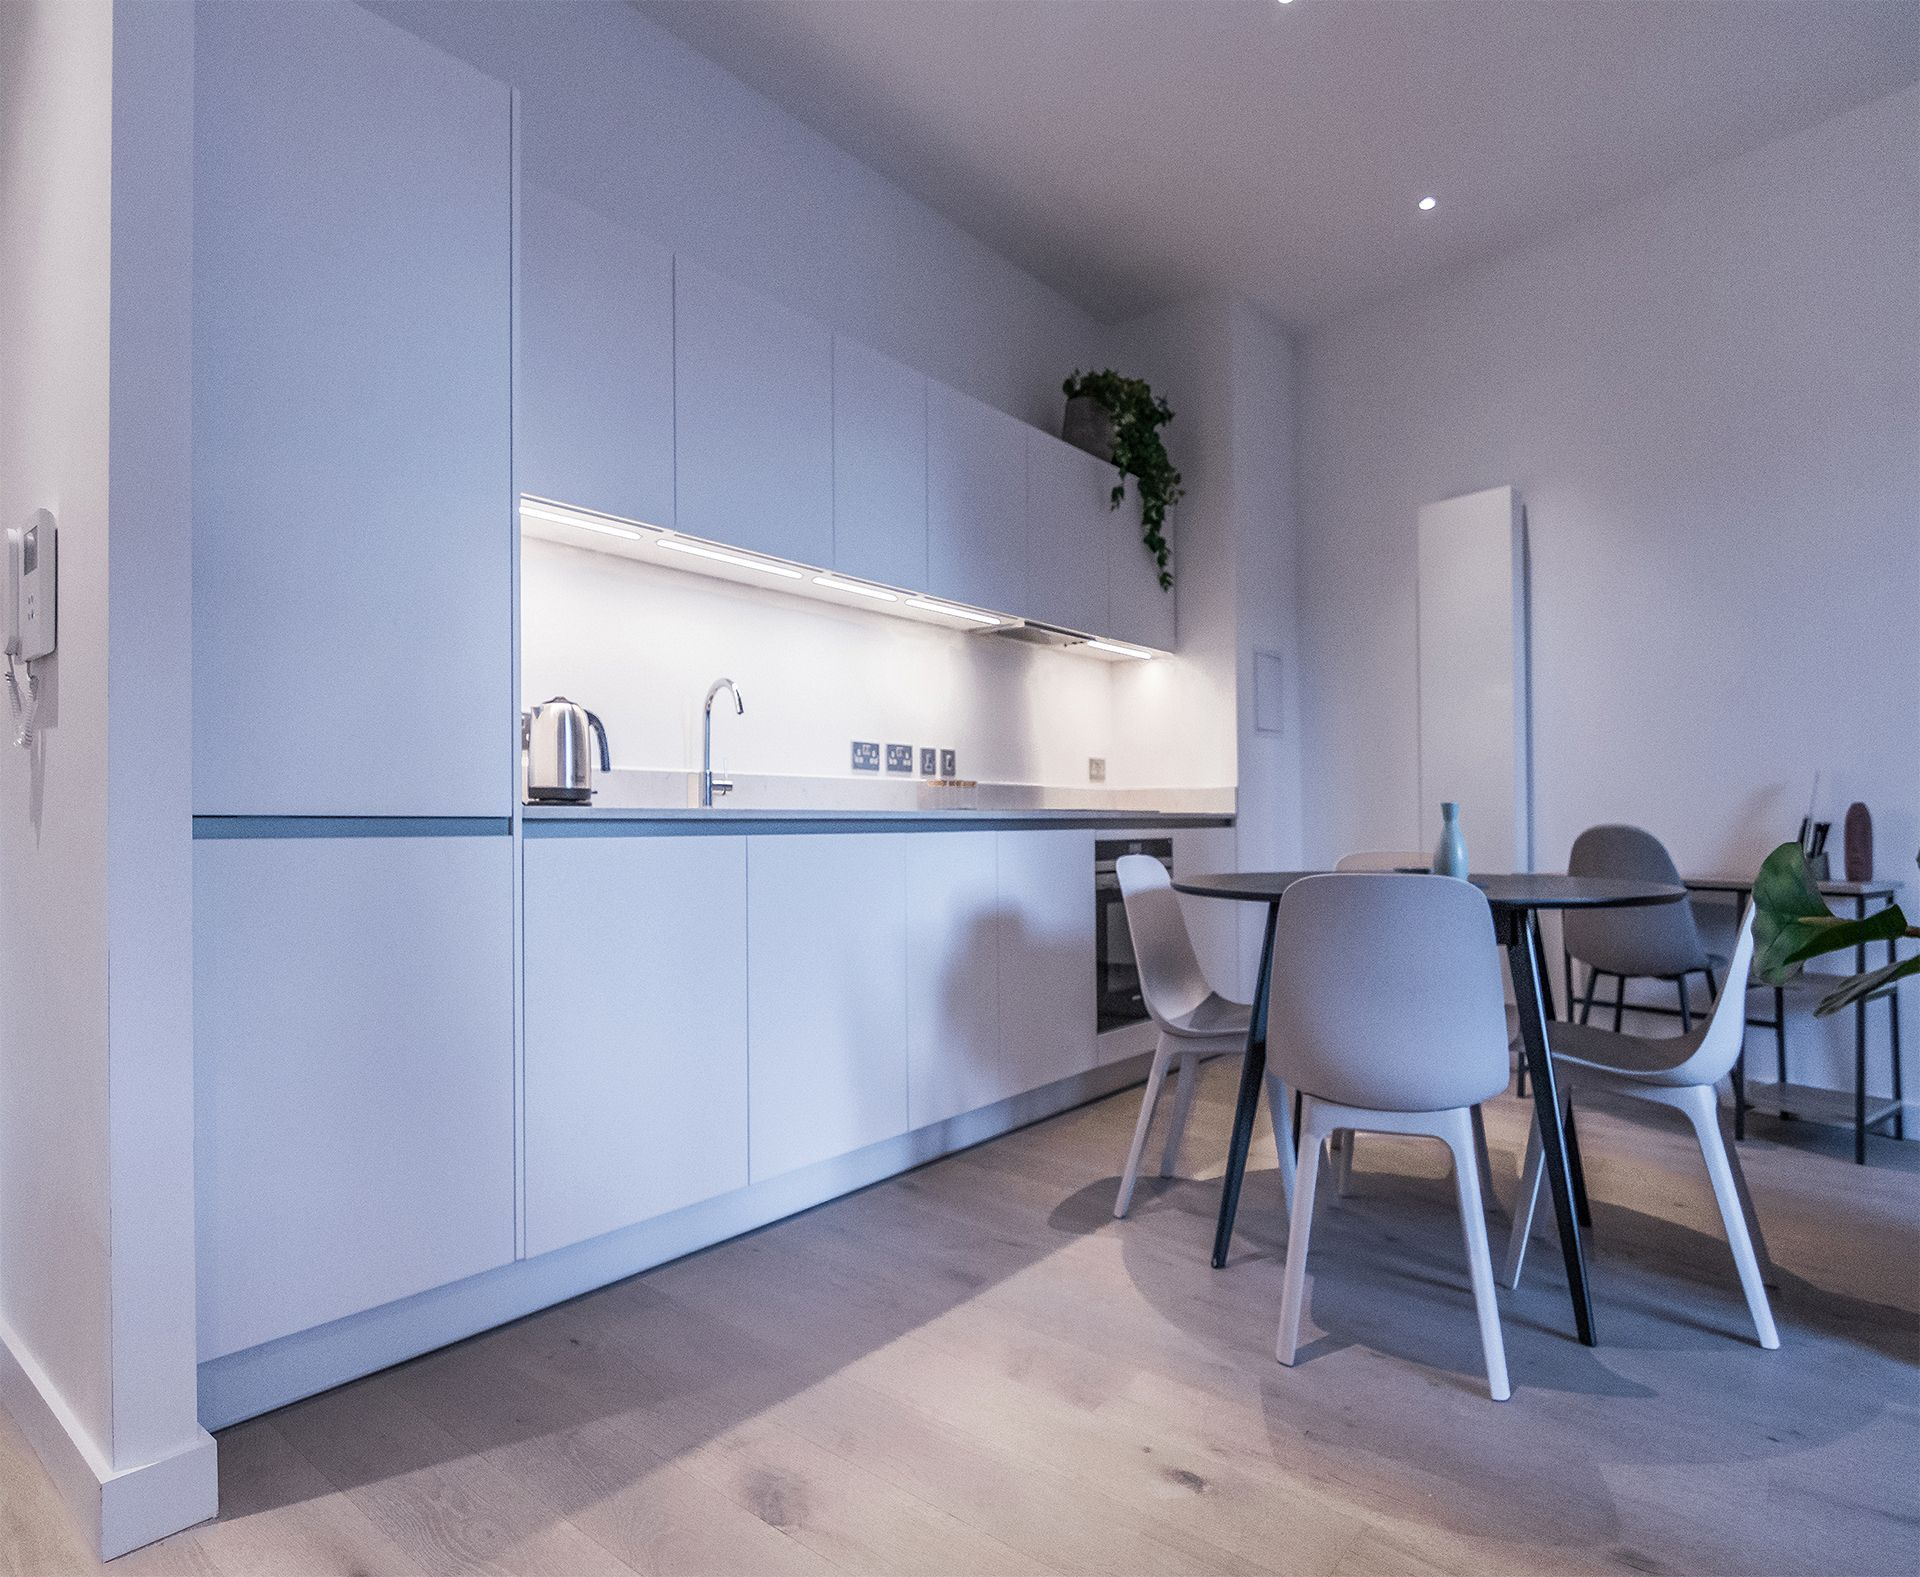 1 Bedroom apartment to rent in London HIL-HH-0118